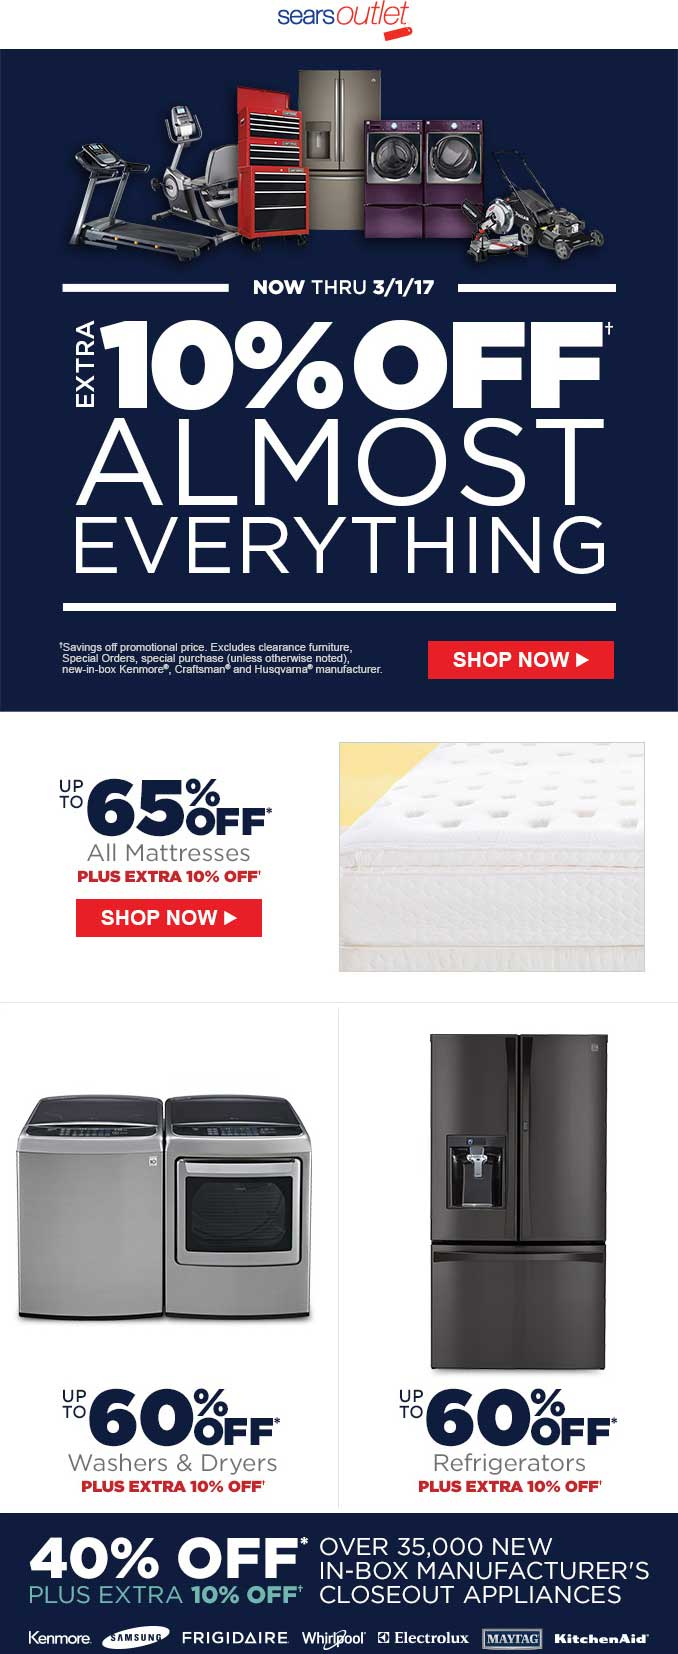 Sears Outlet Coupon June 2019 Extra 10% off at Sears Outlet